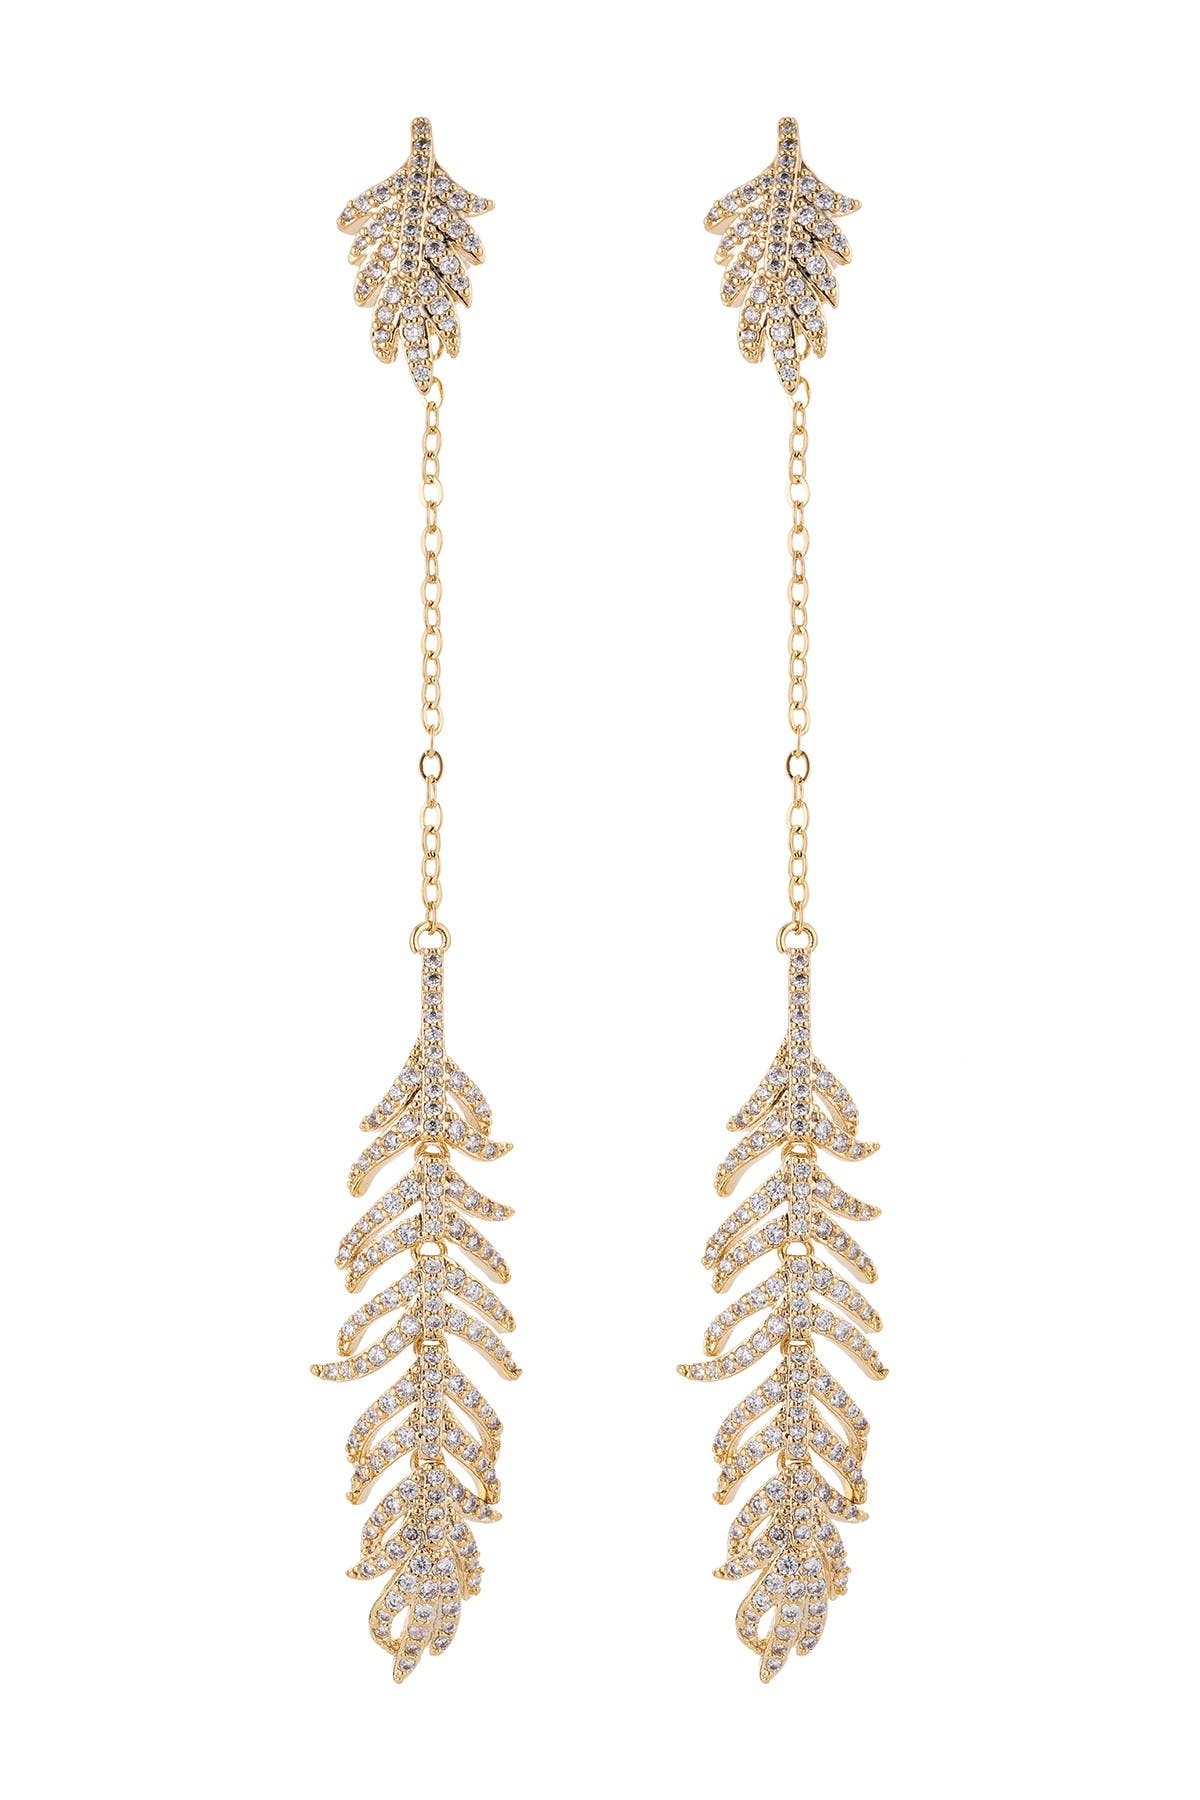 Image of Eye Candy Los Angeles 18K Yellow Gold Plated Feather Drop Earrings